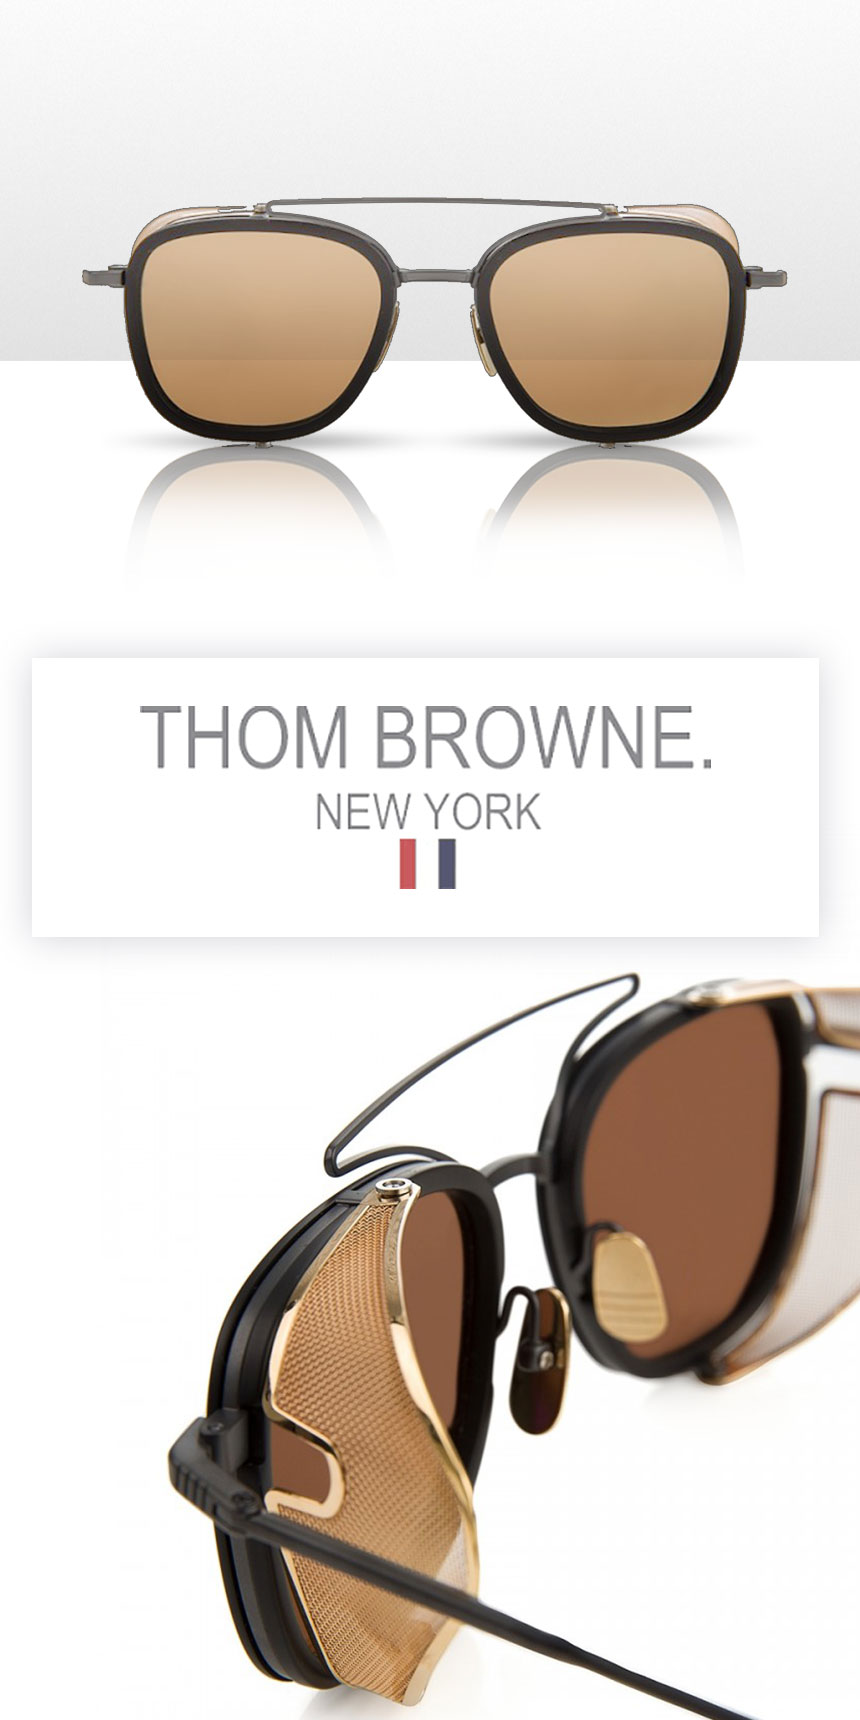 Thom Browne: From New York to Zee & Co